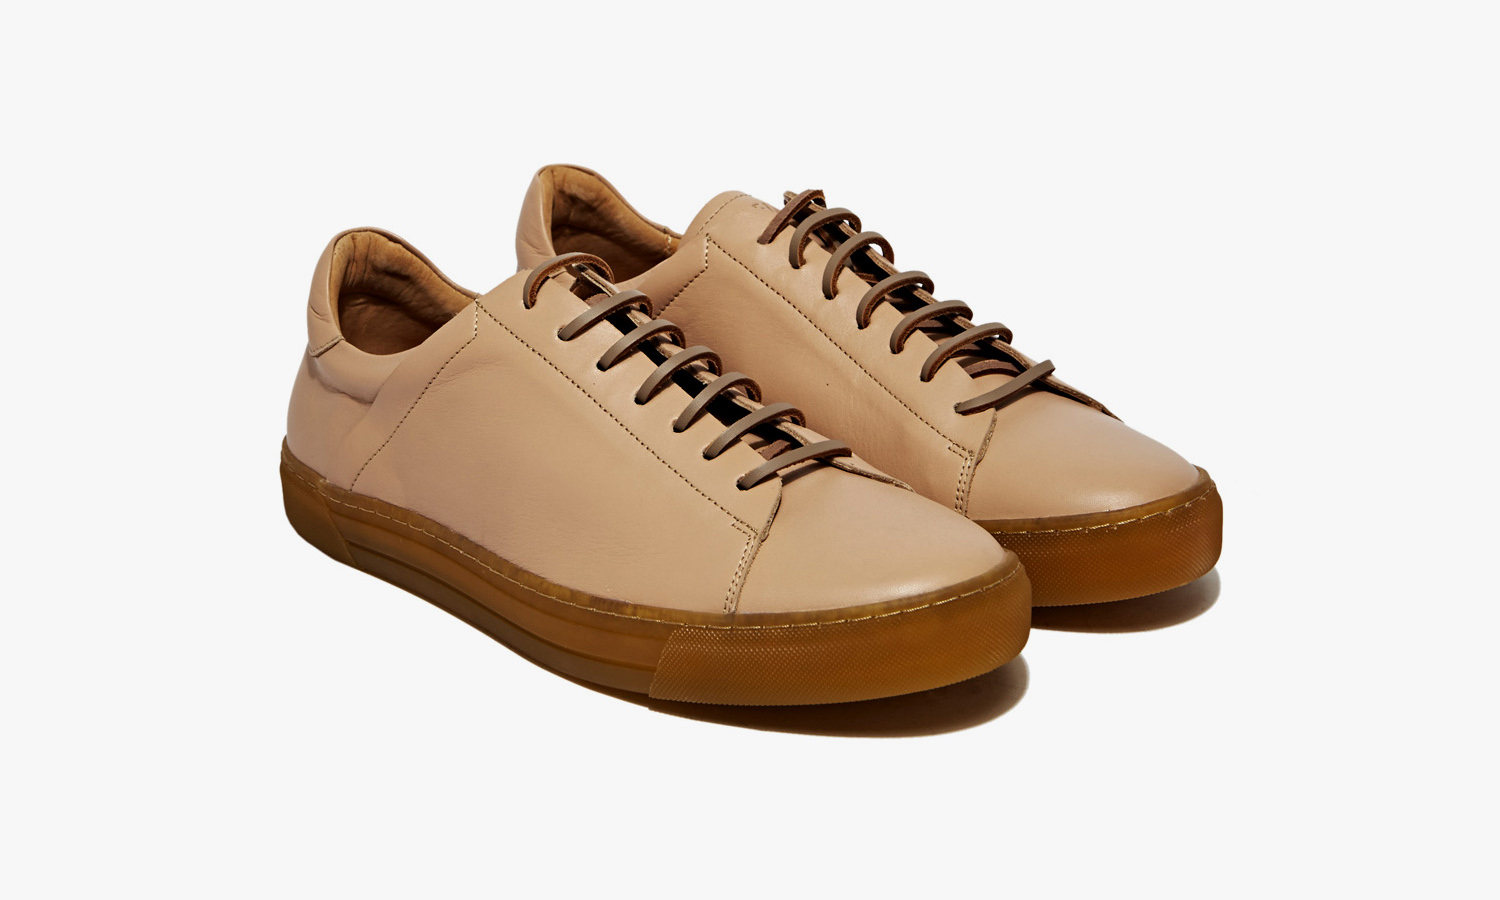 Damir-Doma-SILENT-Sneakers-FEDKA-FEATURED-0